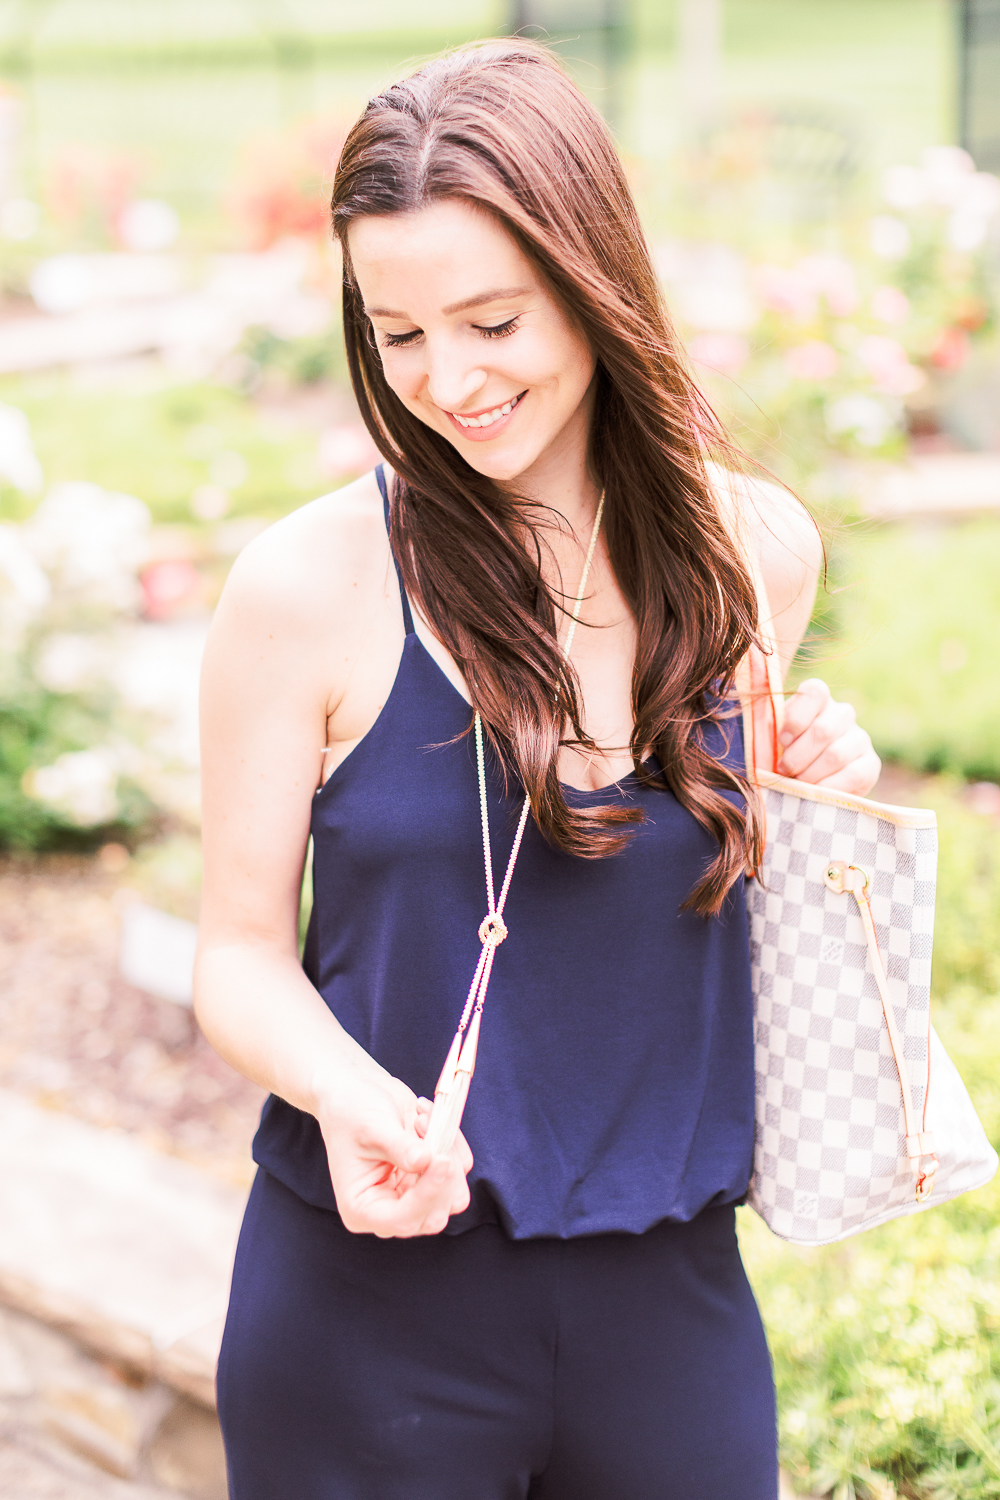 Summer Style Guide: How to Wear a Jumpsuit Casually by popular affordable fashion blogger Stephanie Ziajka from Diary of a Debutante, how to style navy jumpsuit, best shoes to wear with a jumpsuit, navy URBAN K Women's Racerback Jumpsuit, Louis Vuitton Neverfull Dupe Bag, Kendra Scott Phara Necklace